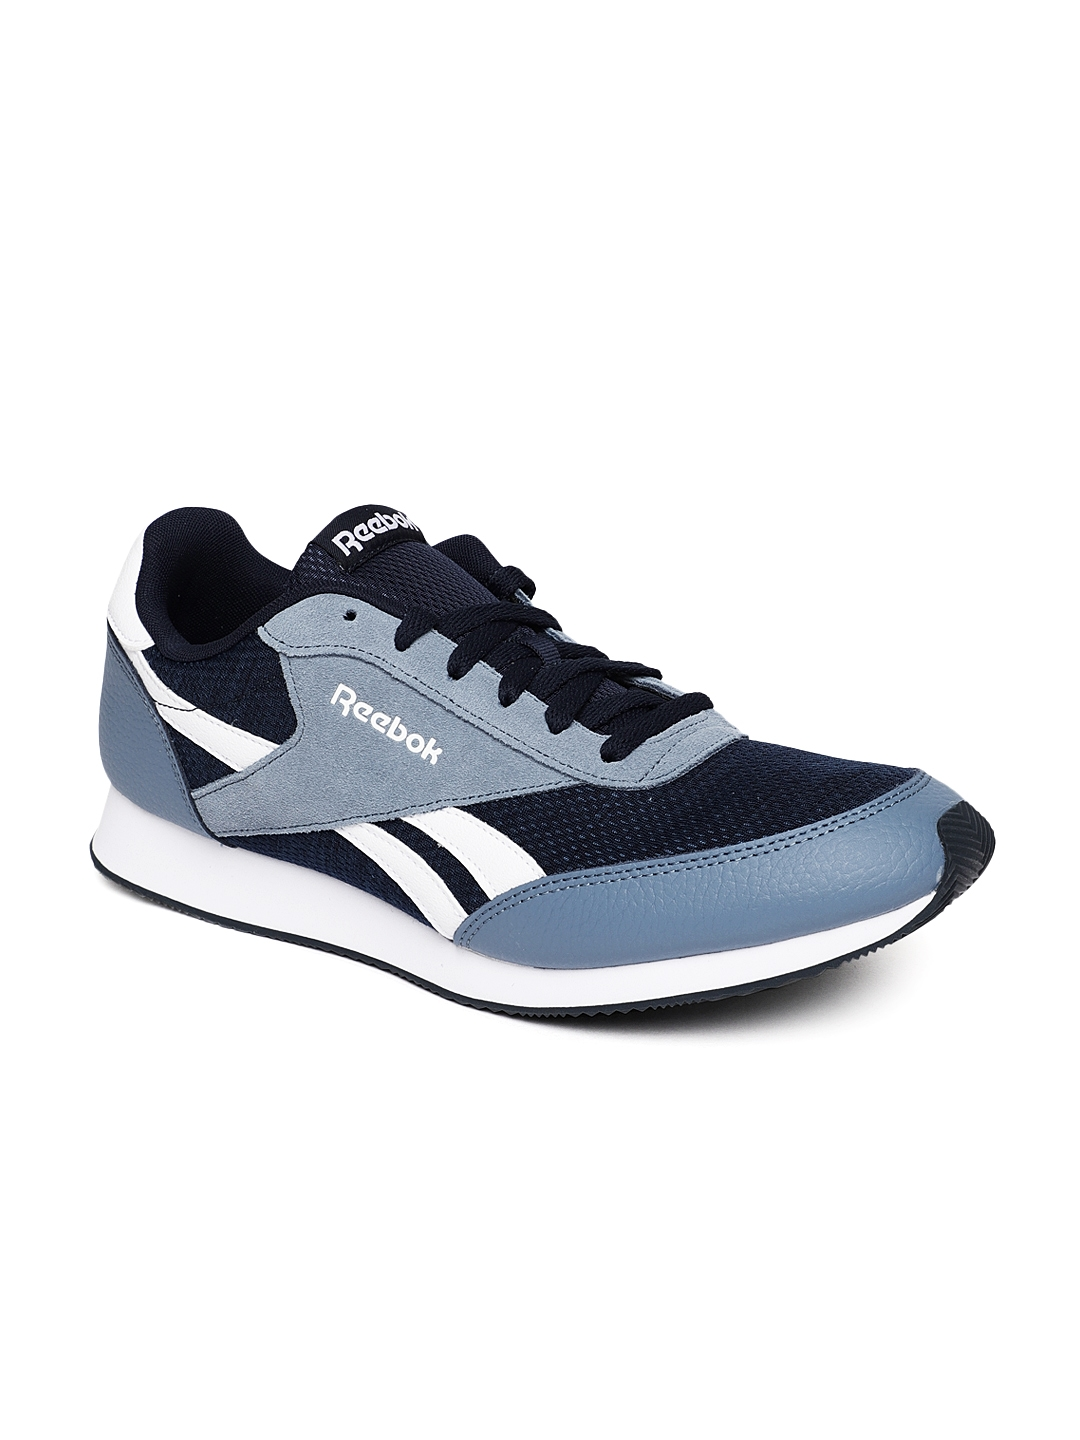 21d47badb2237 Buy REEBOK Classic Men Navy Blue ROYAL JOGGER 2 Running Shoes ...